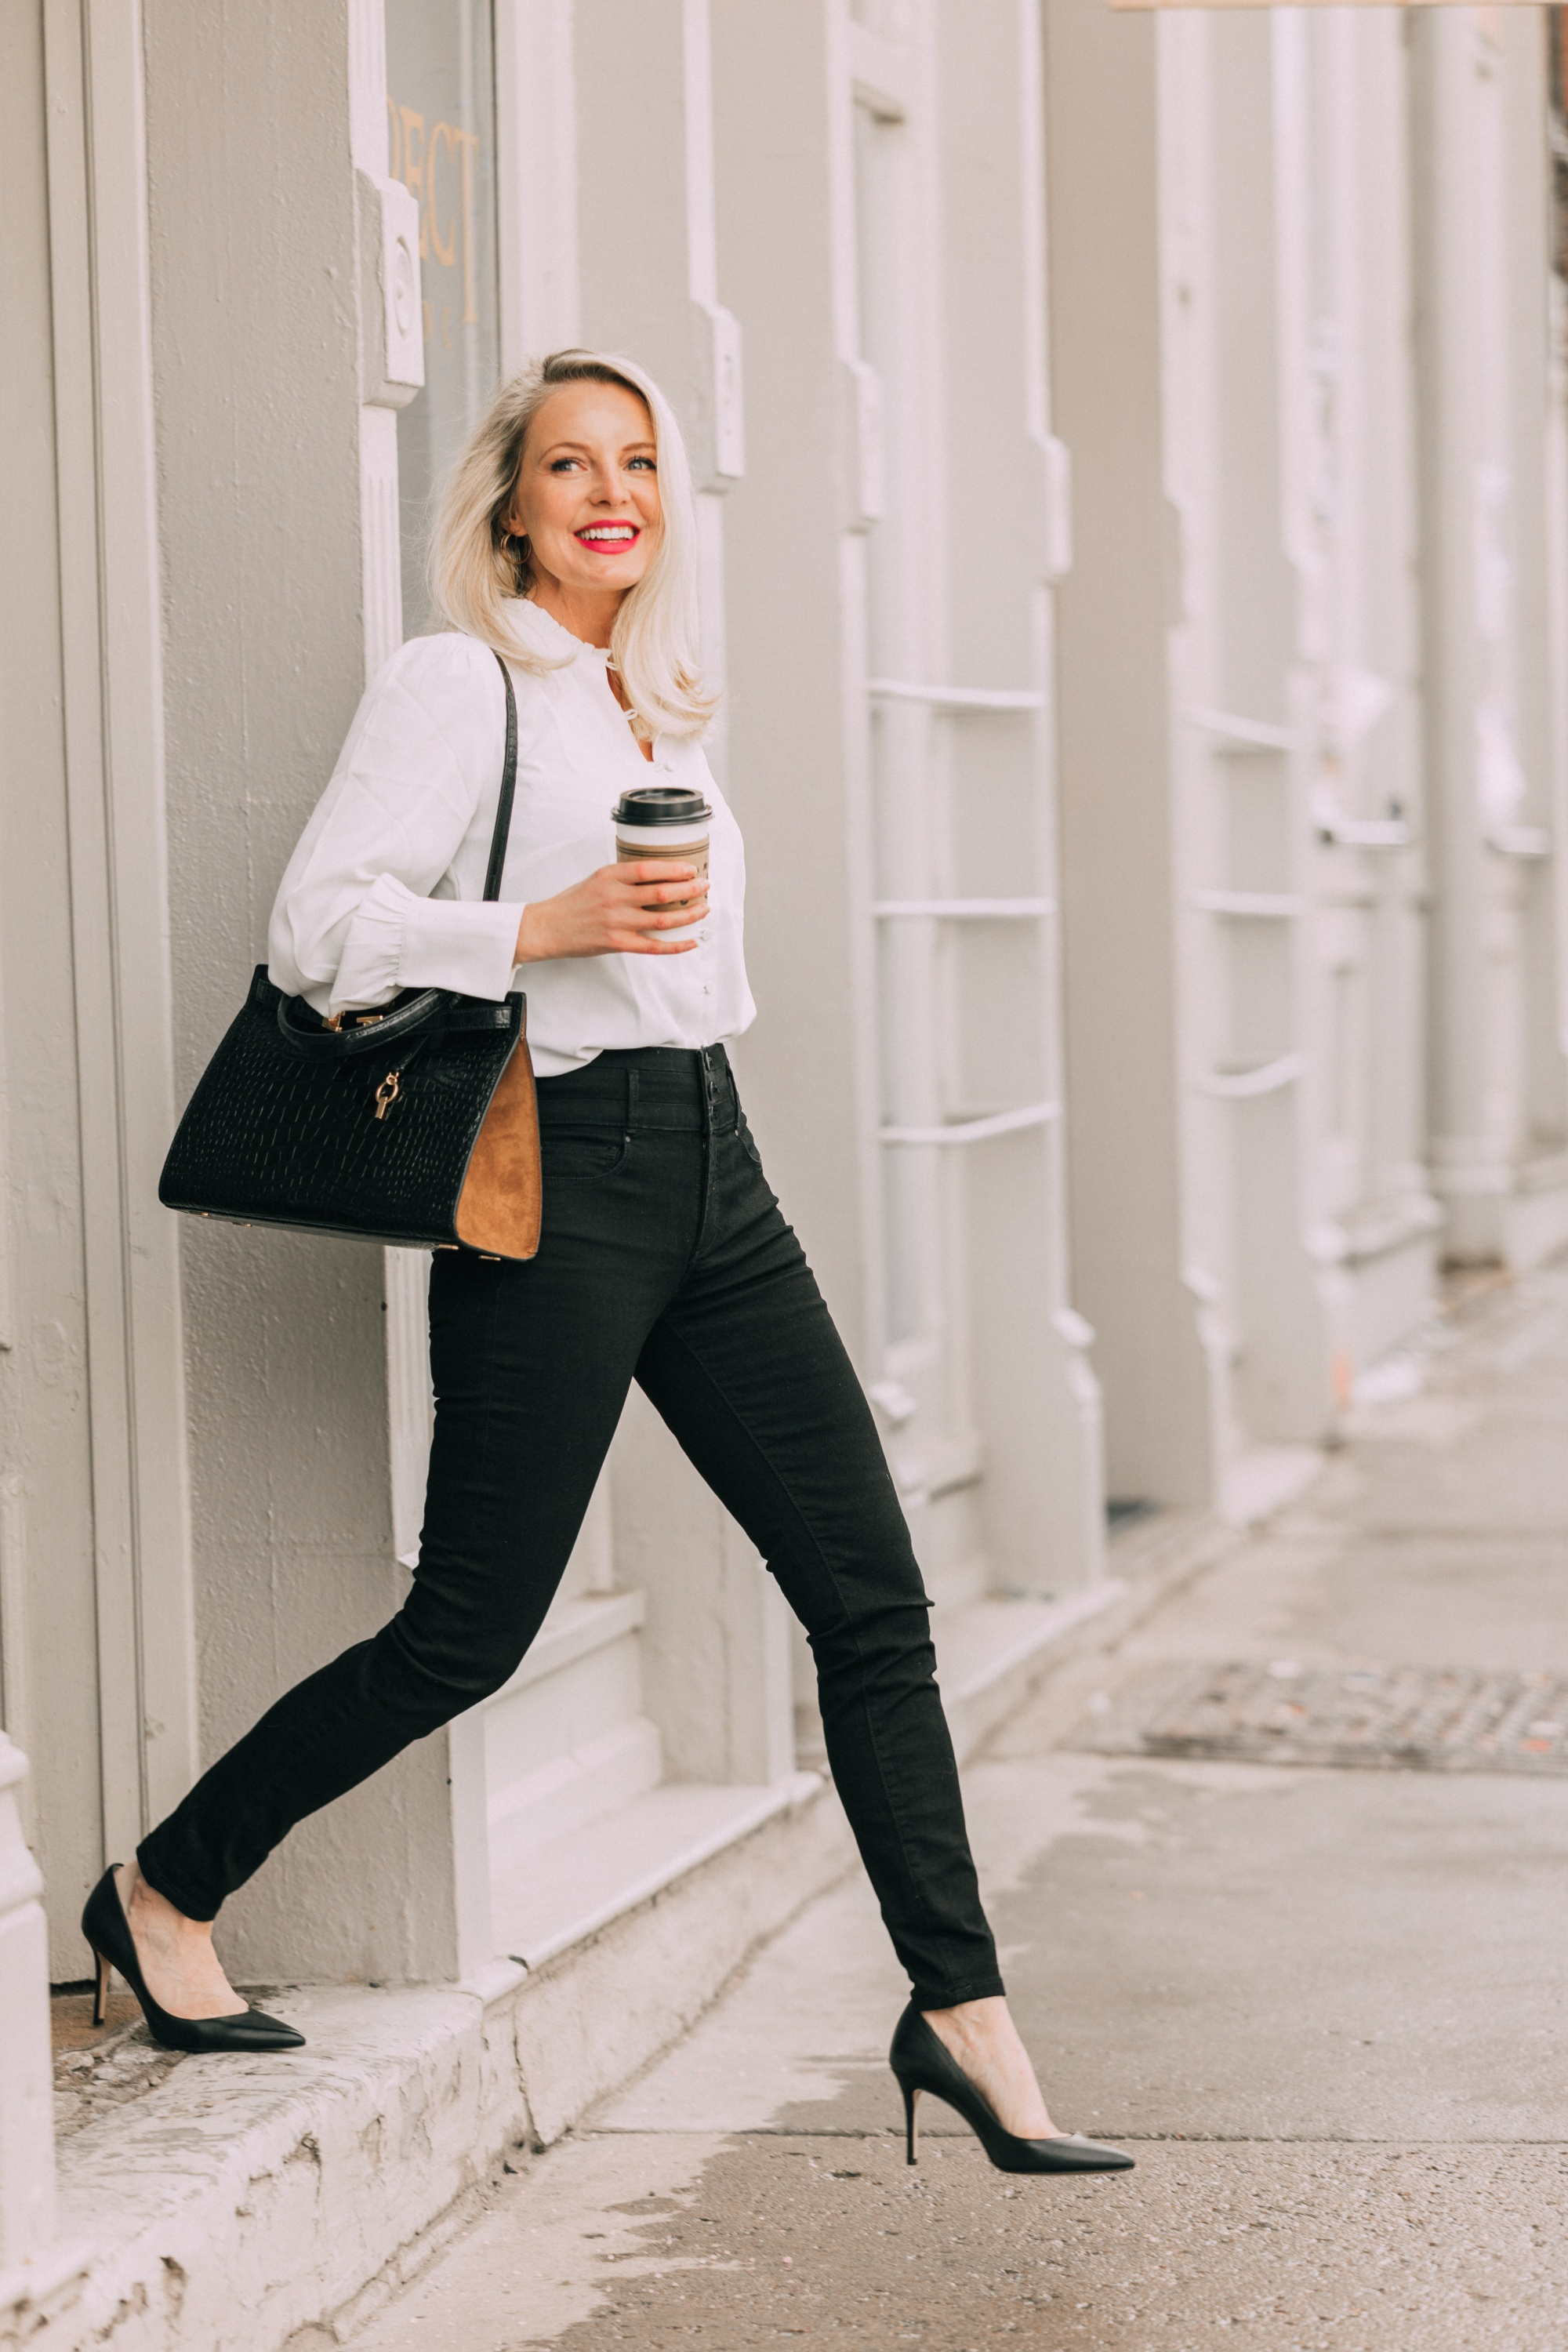 Tory Burch Lee Radziwell Bag in black croc embossed leather with brown on fashion blogger over 40 Erin Busbee of busbee Style, bags you should own